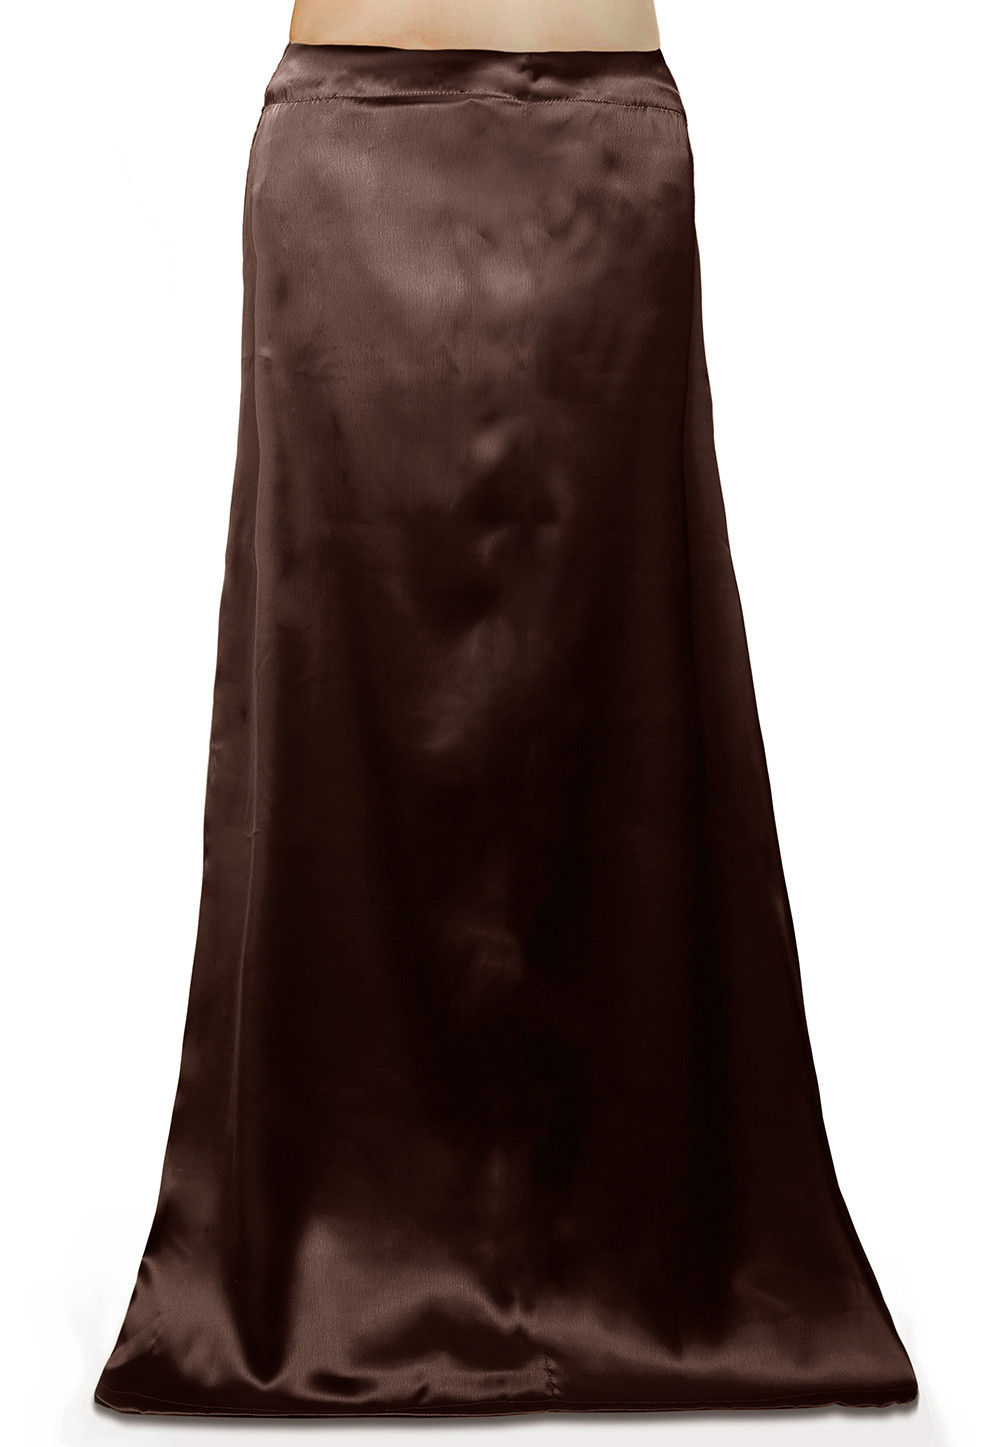 Satin Petticoat in Dark Brown